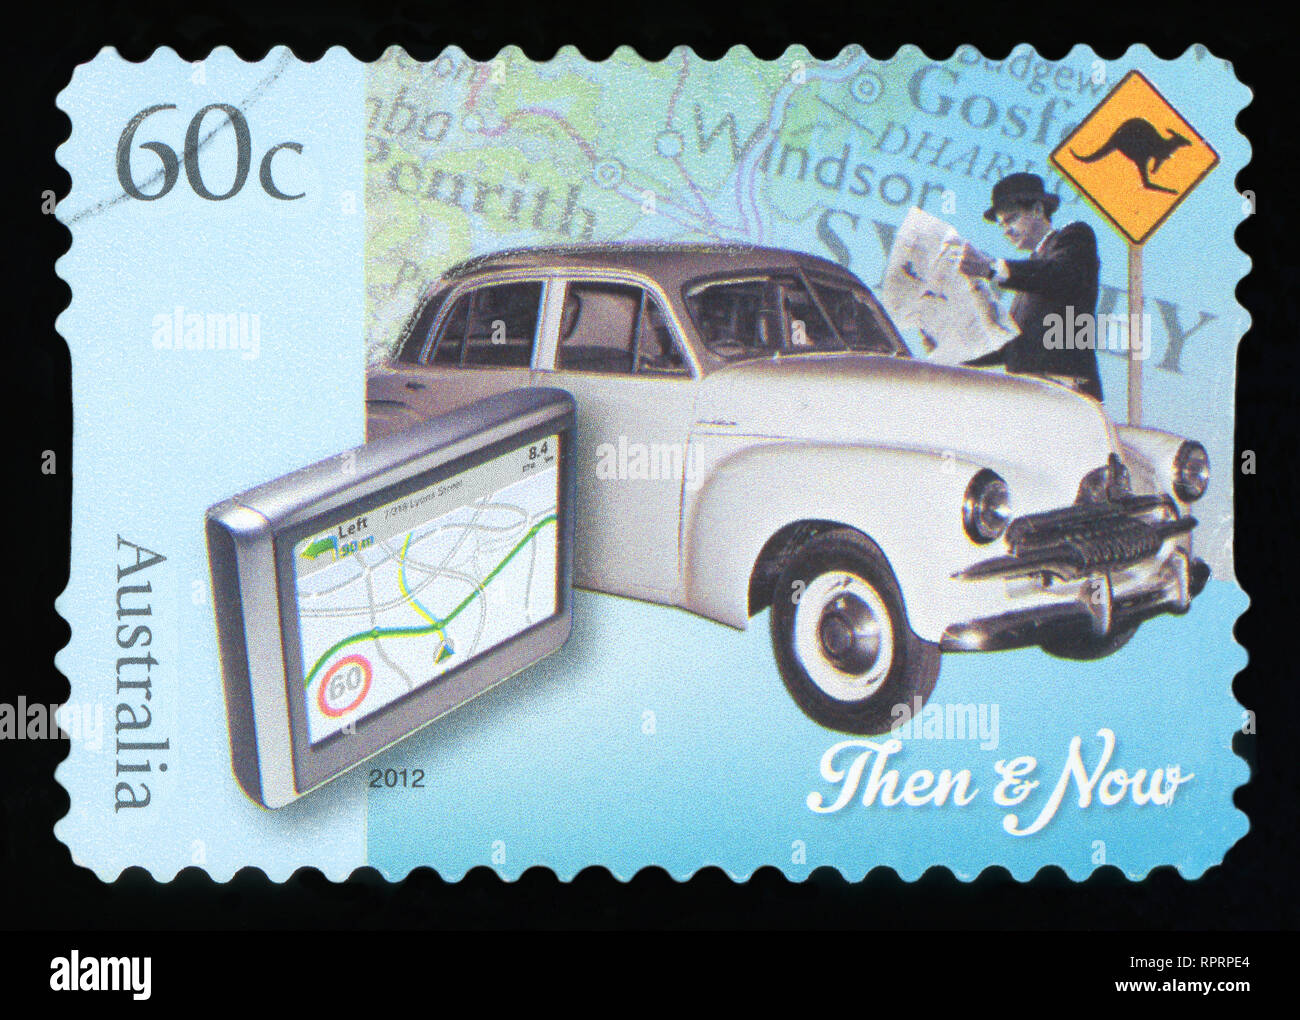 AUSTRALIA - CIRCA 2012: A stamp printed in Australia dedicated to Technology - Then and Now, circa 2012 - Stock Image